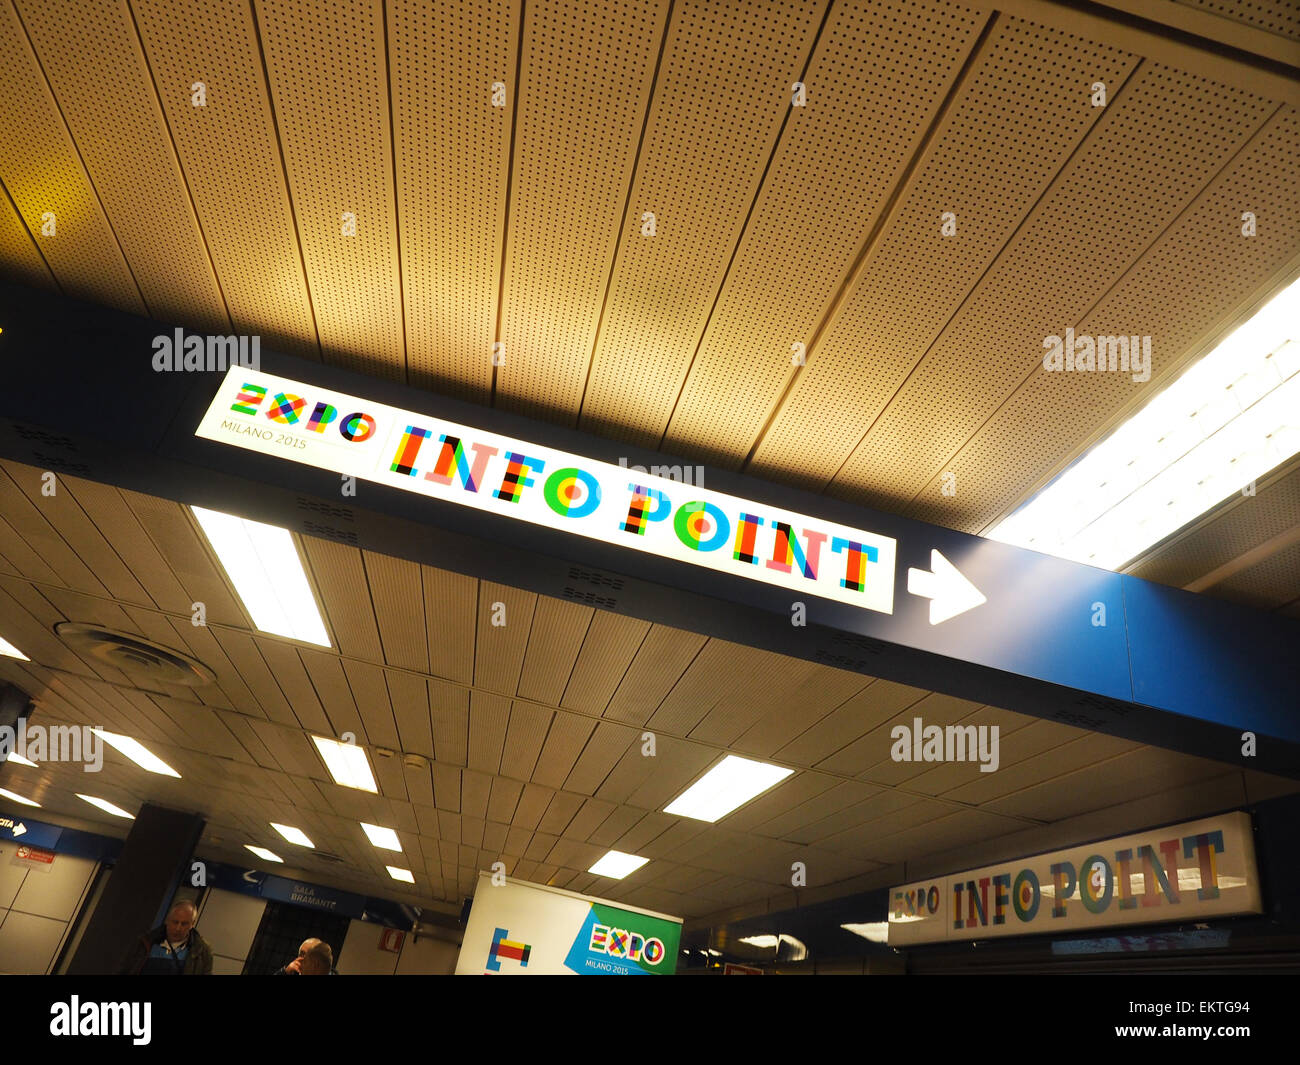 EXPO info point, Linate airport, Expo 2015, Milan, Lombardy, Italy, Europe - Stock Image